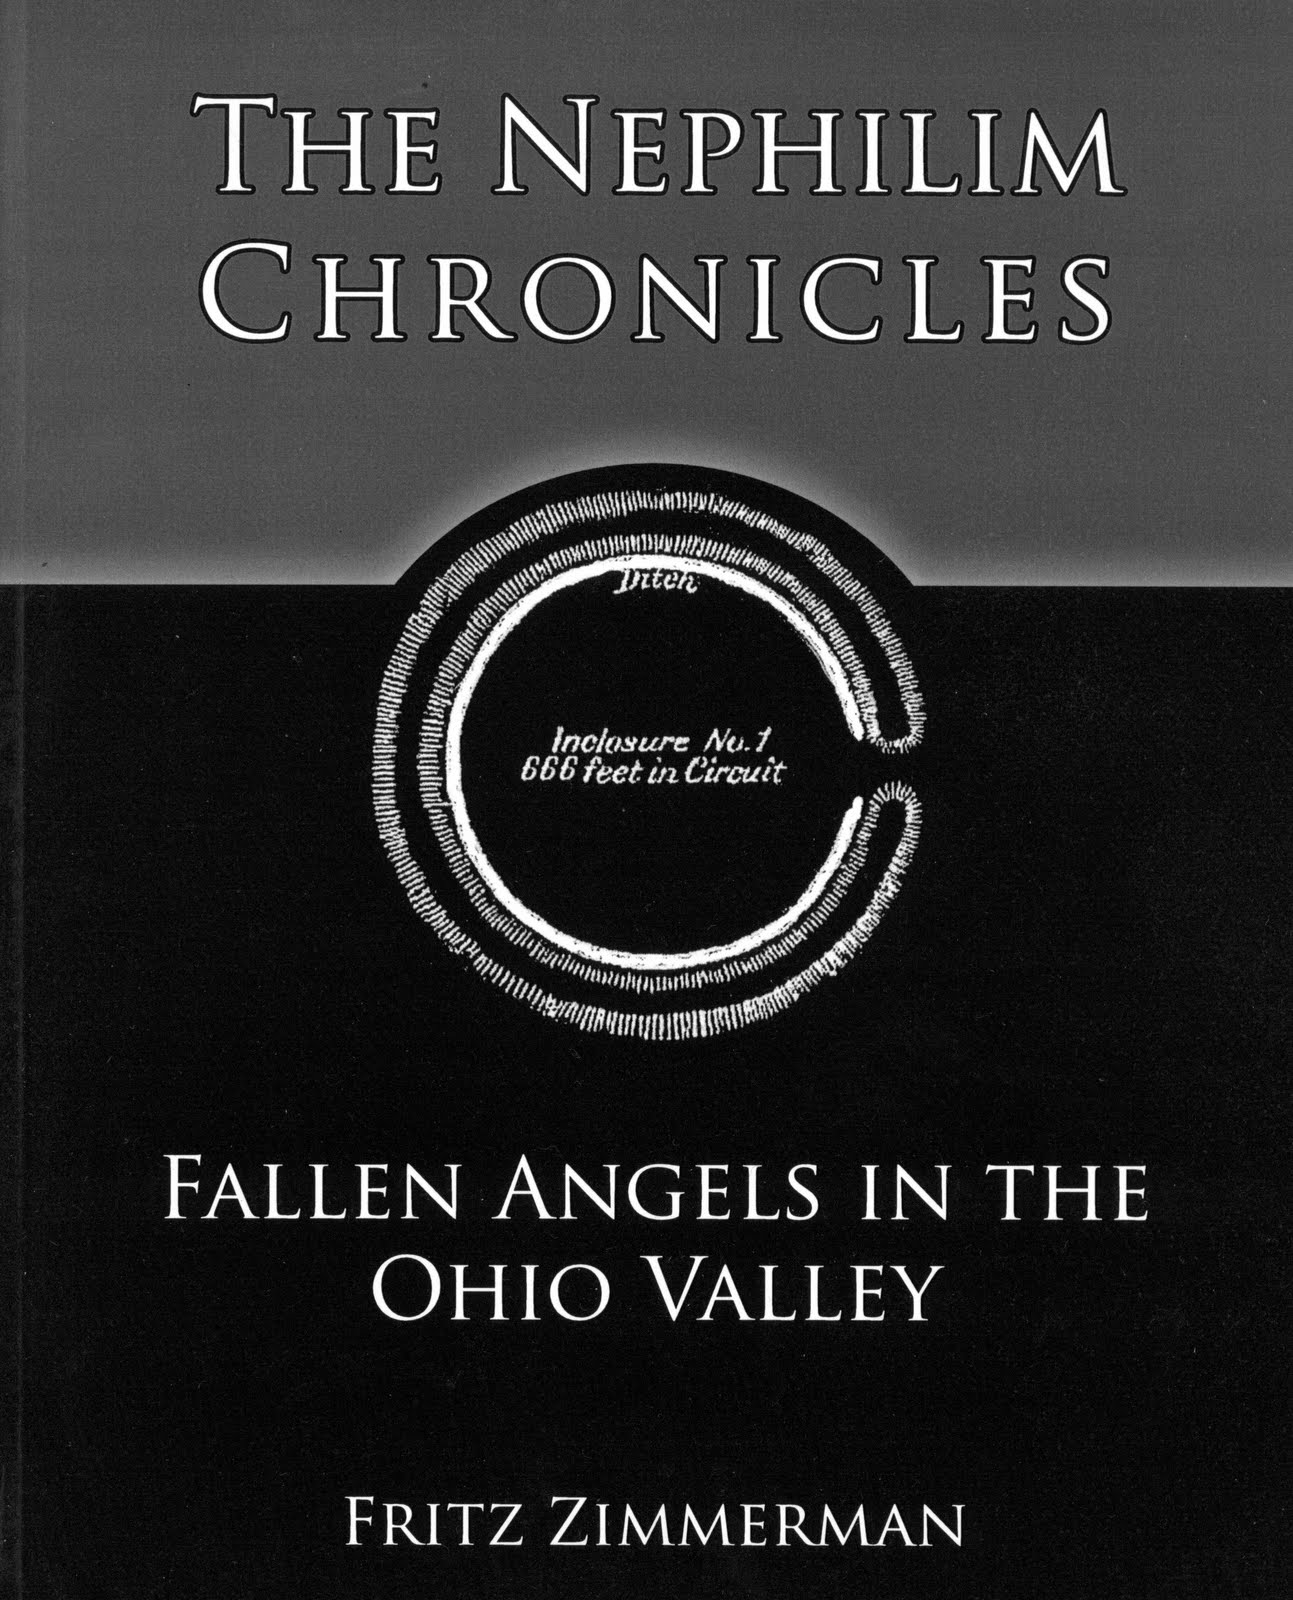 The Nephilim Chronicles: Fallen Angles in the Ohio Valley by Fritz Zimmerman